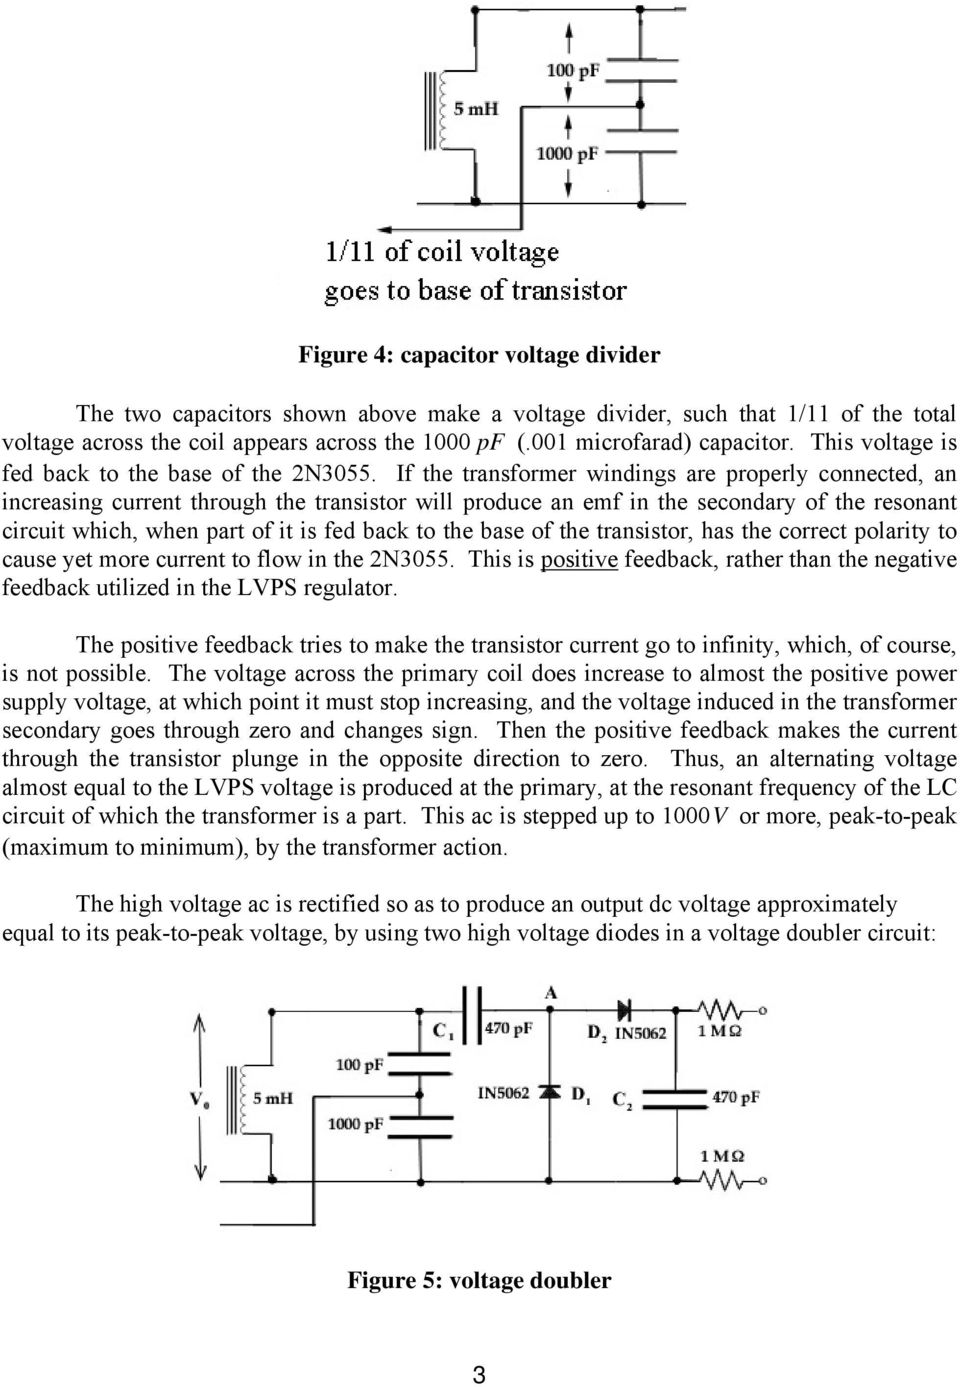 If the transformer windings are properly connected, an increasing current through the transistor will produce an emf in the secondary of the resonant circuit which, when part of it is fed back to the